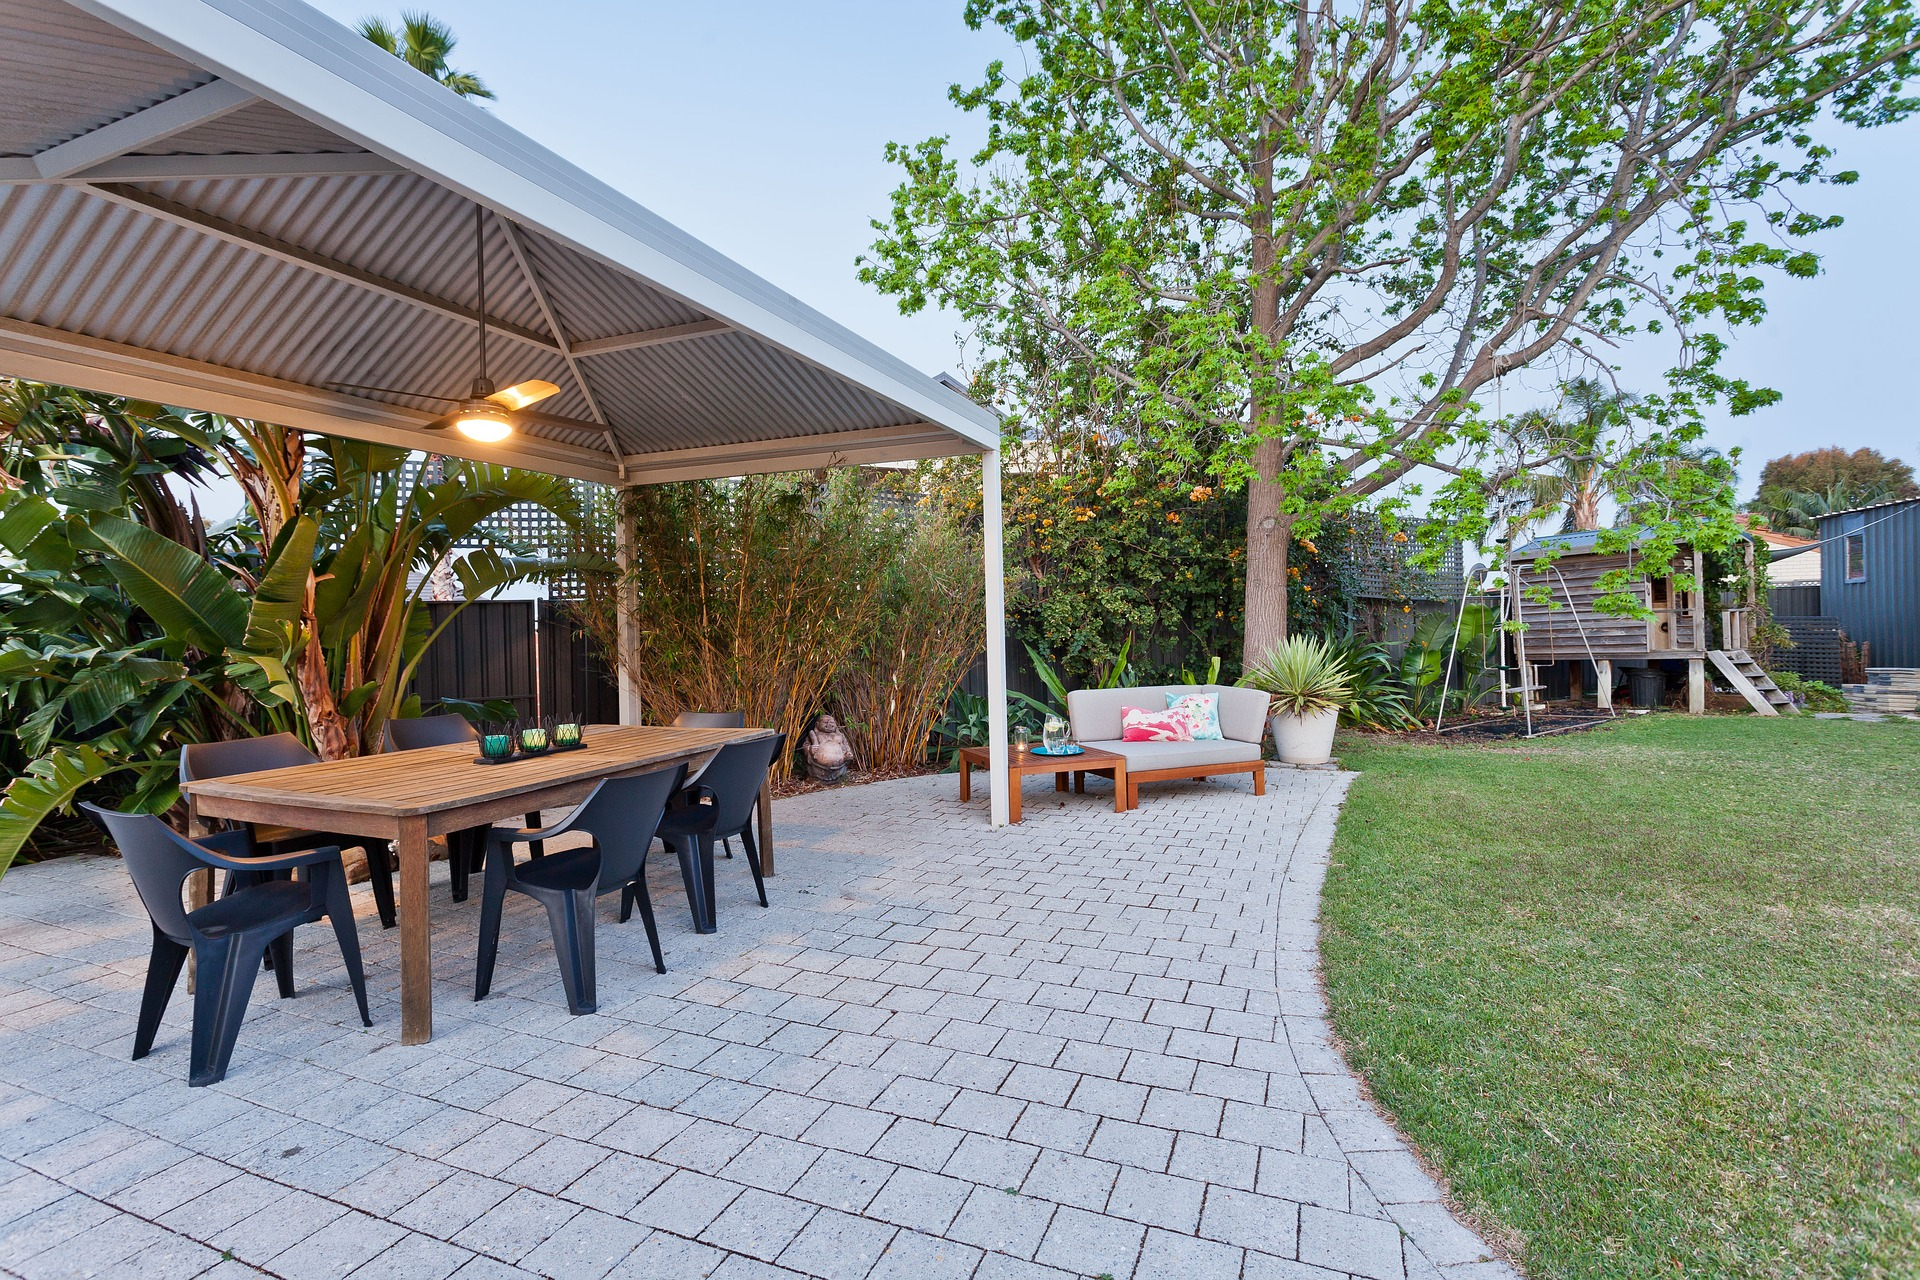 KitchenSpain: View outside from barbecue area with table and chairs